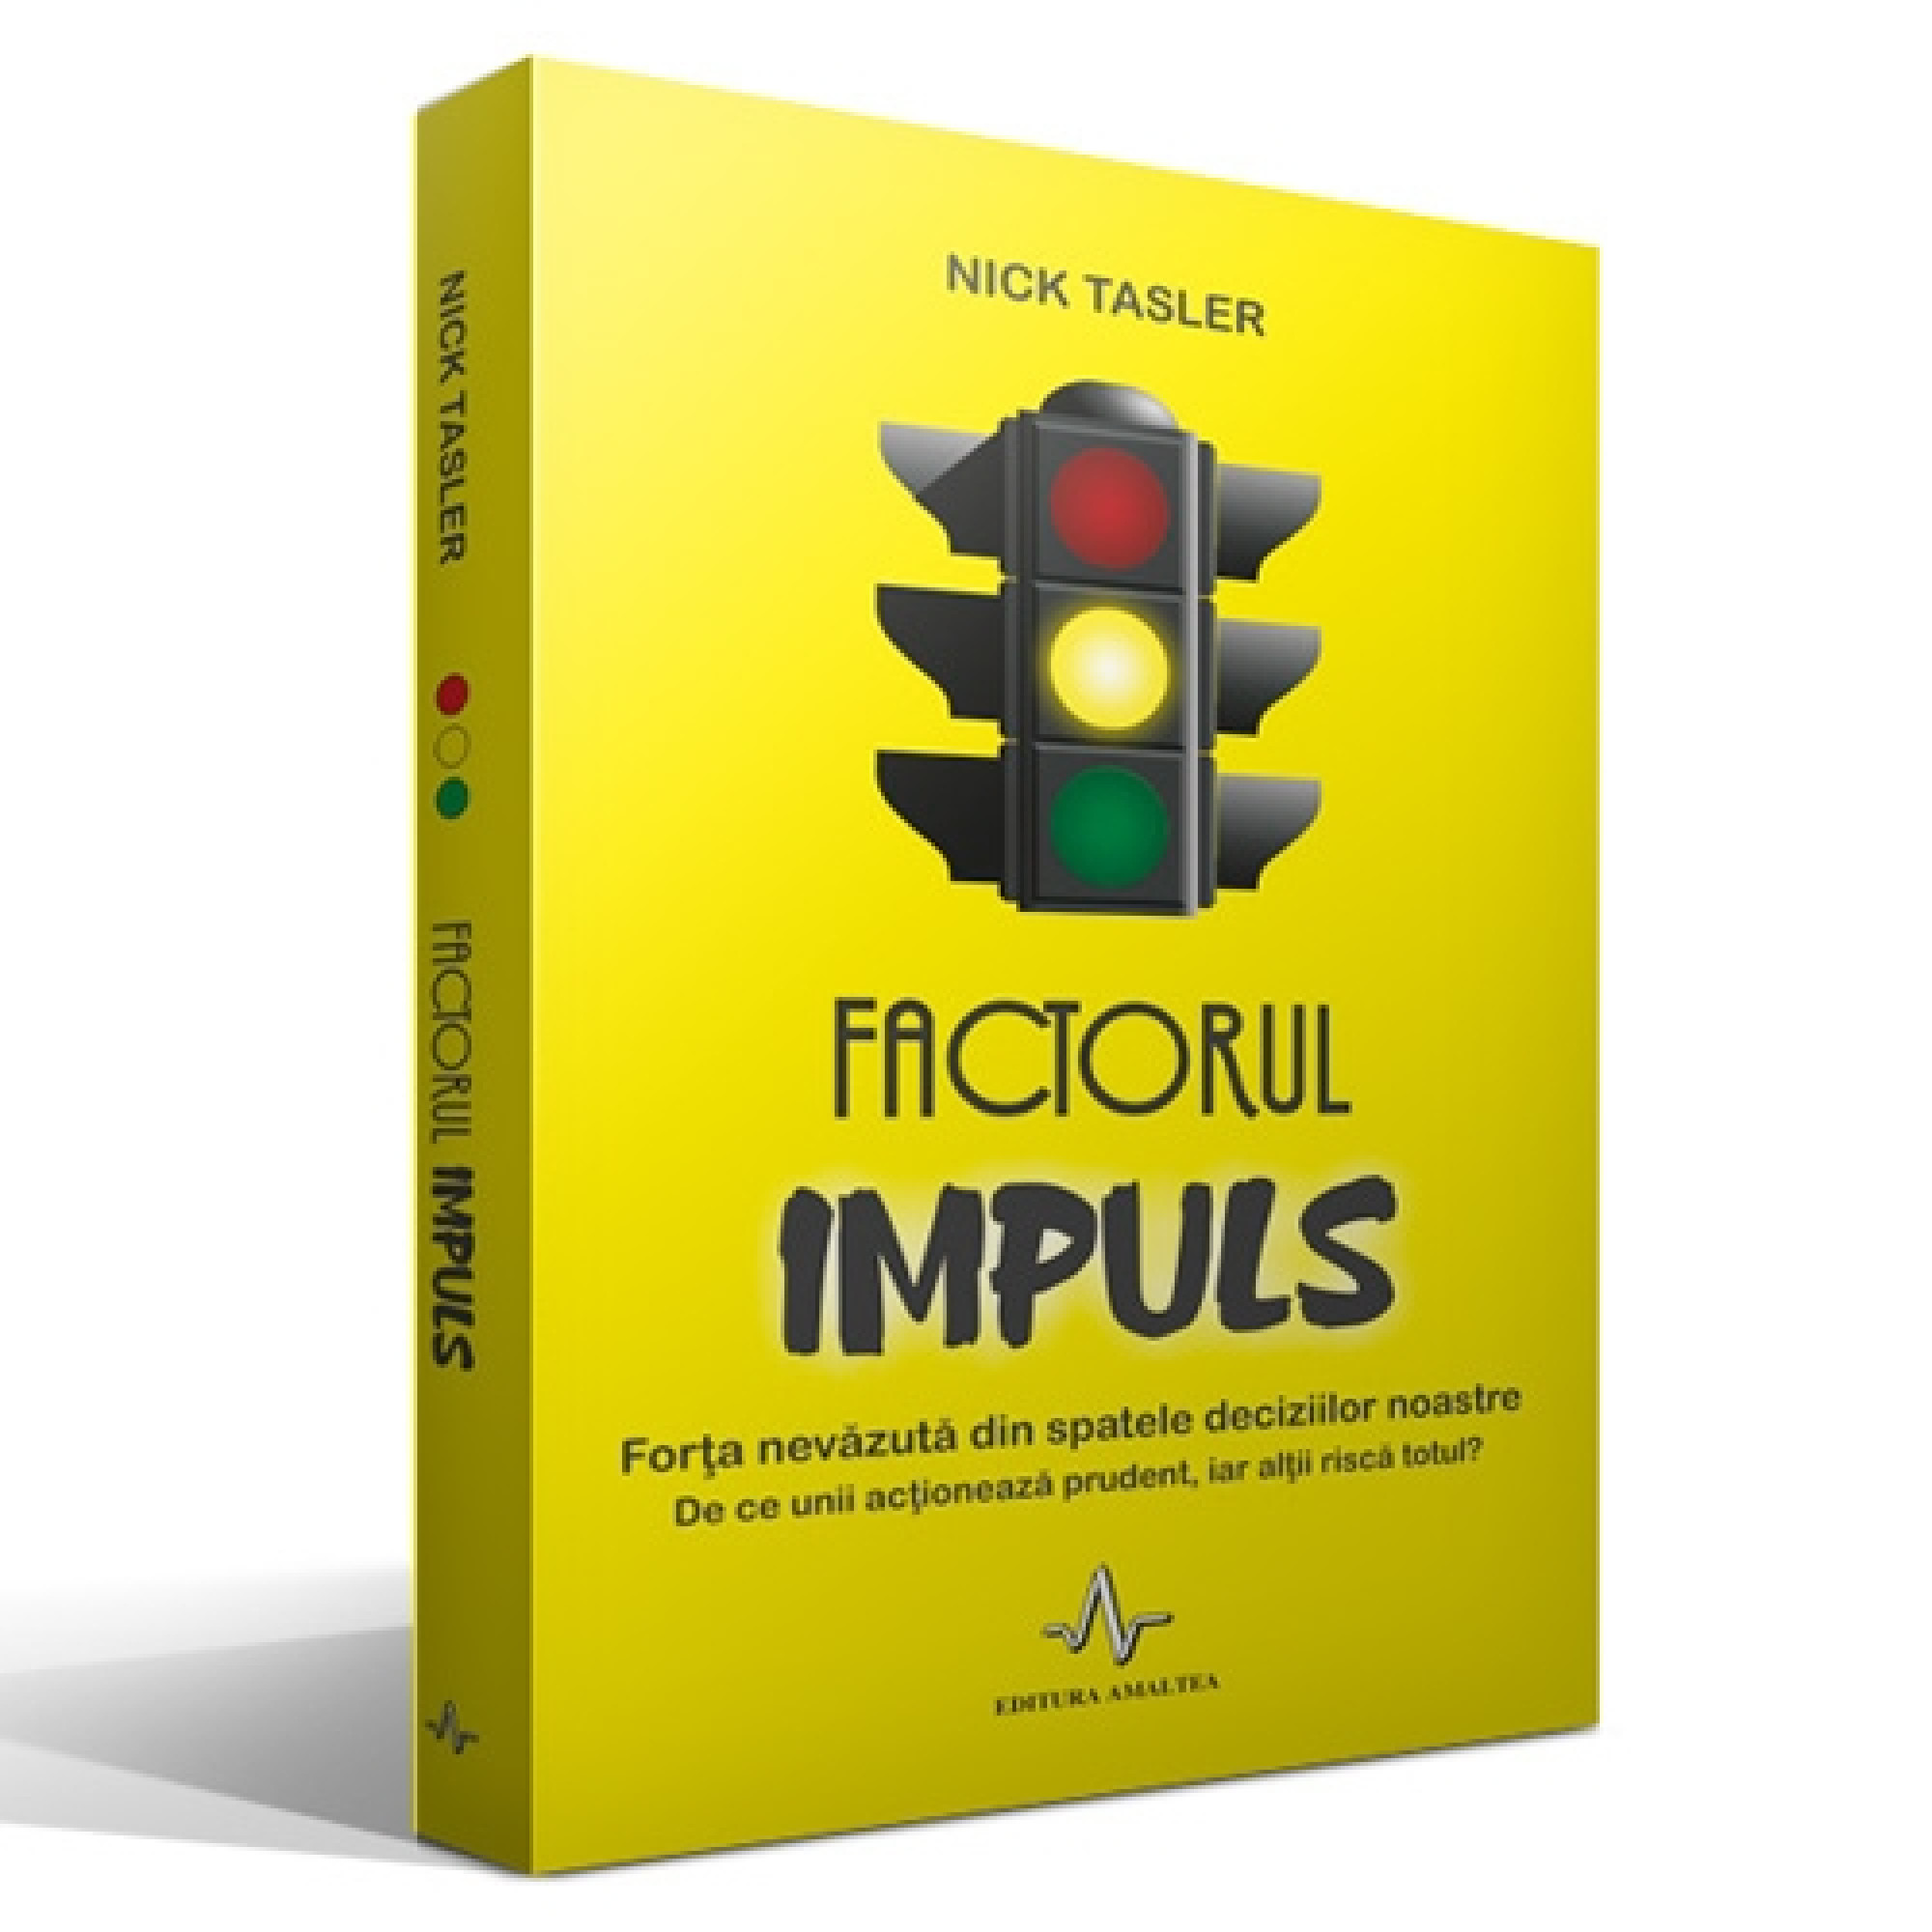 Factorul Impuls; Nick Tasler